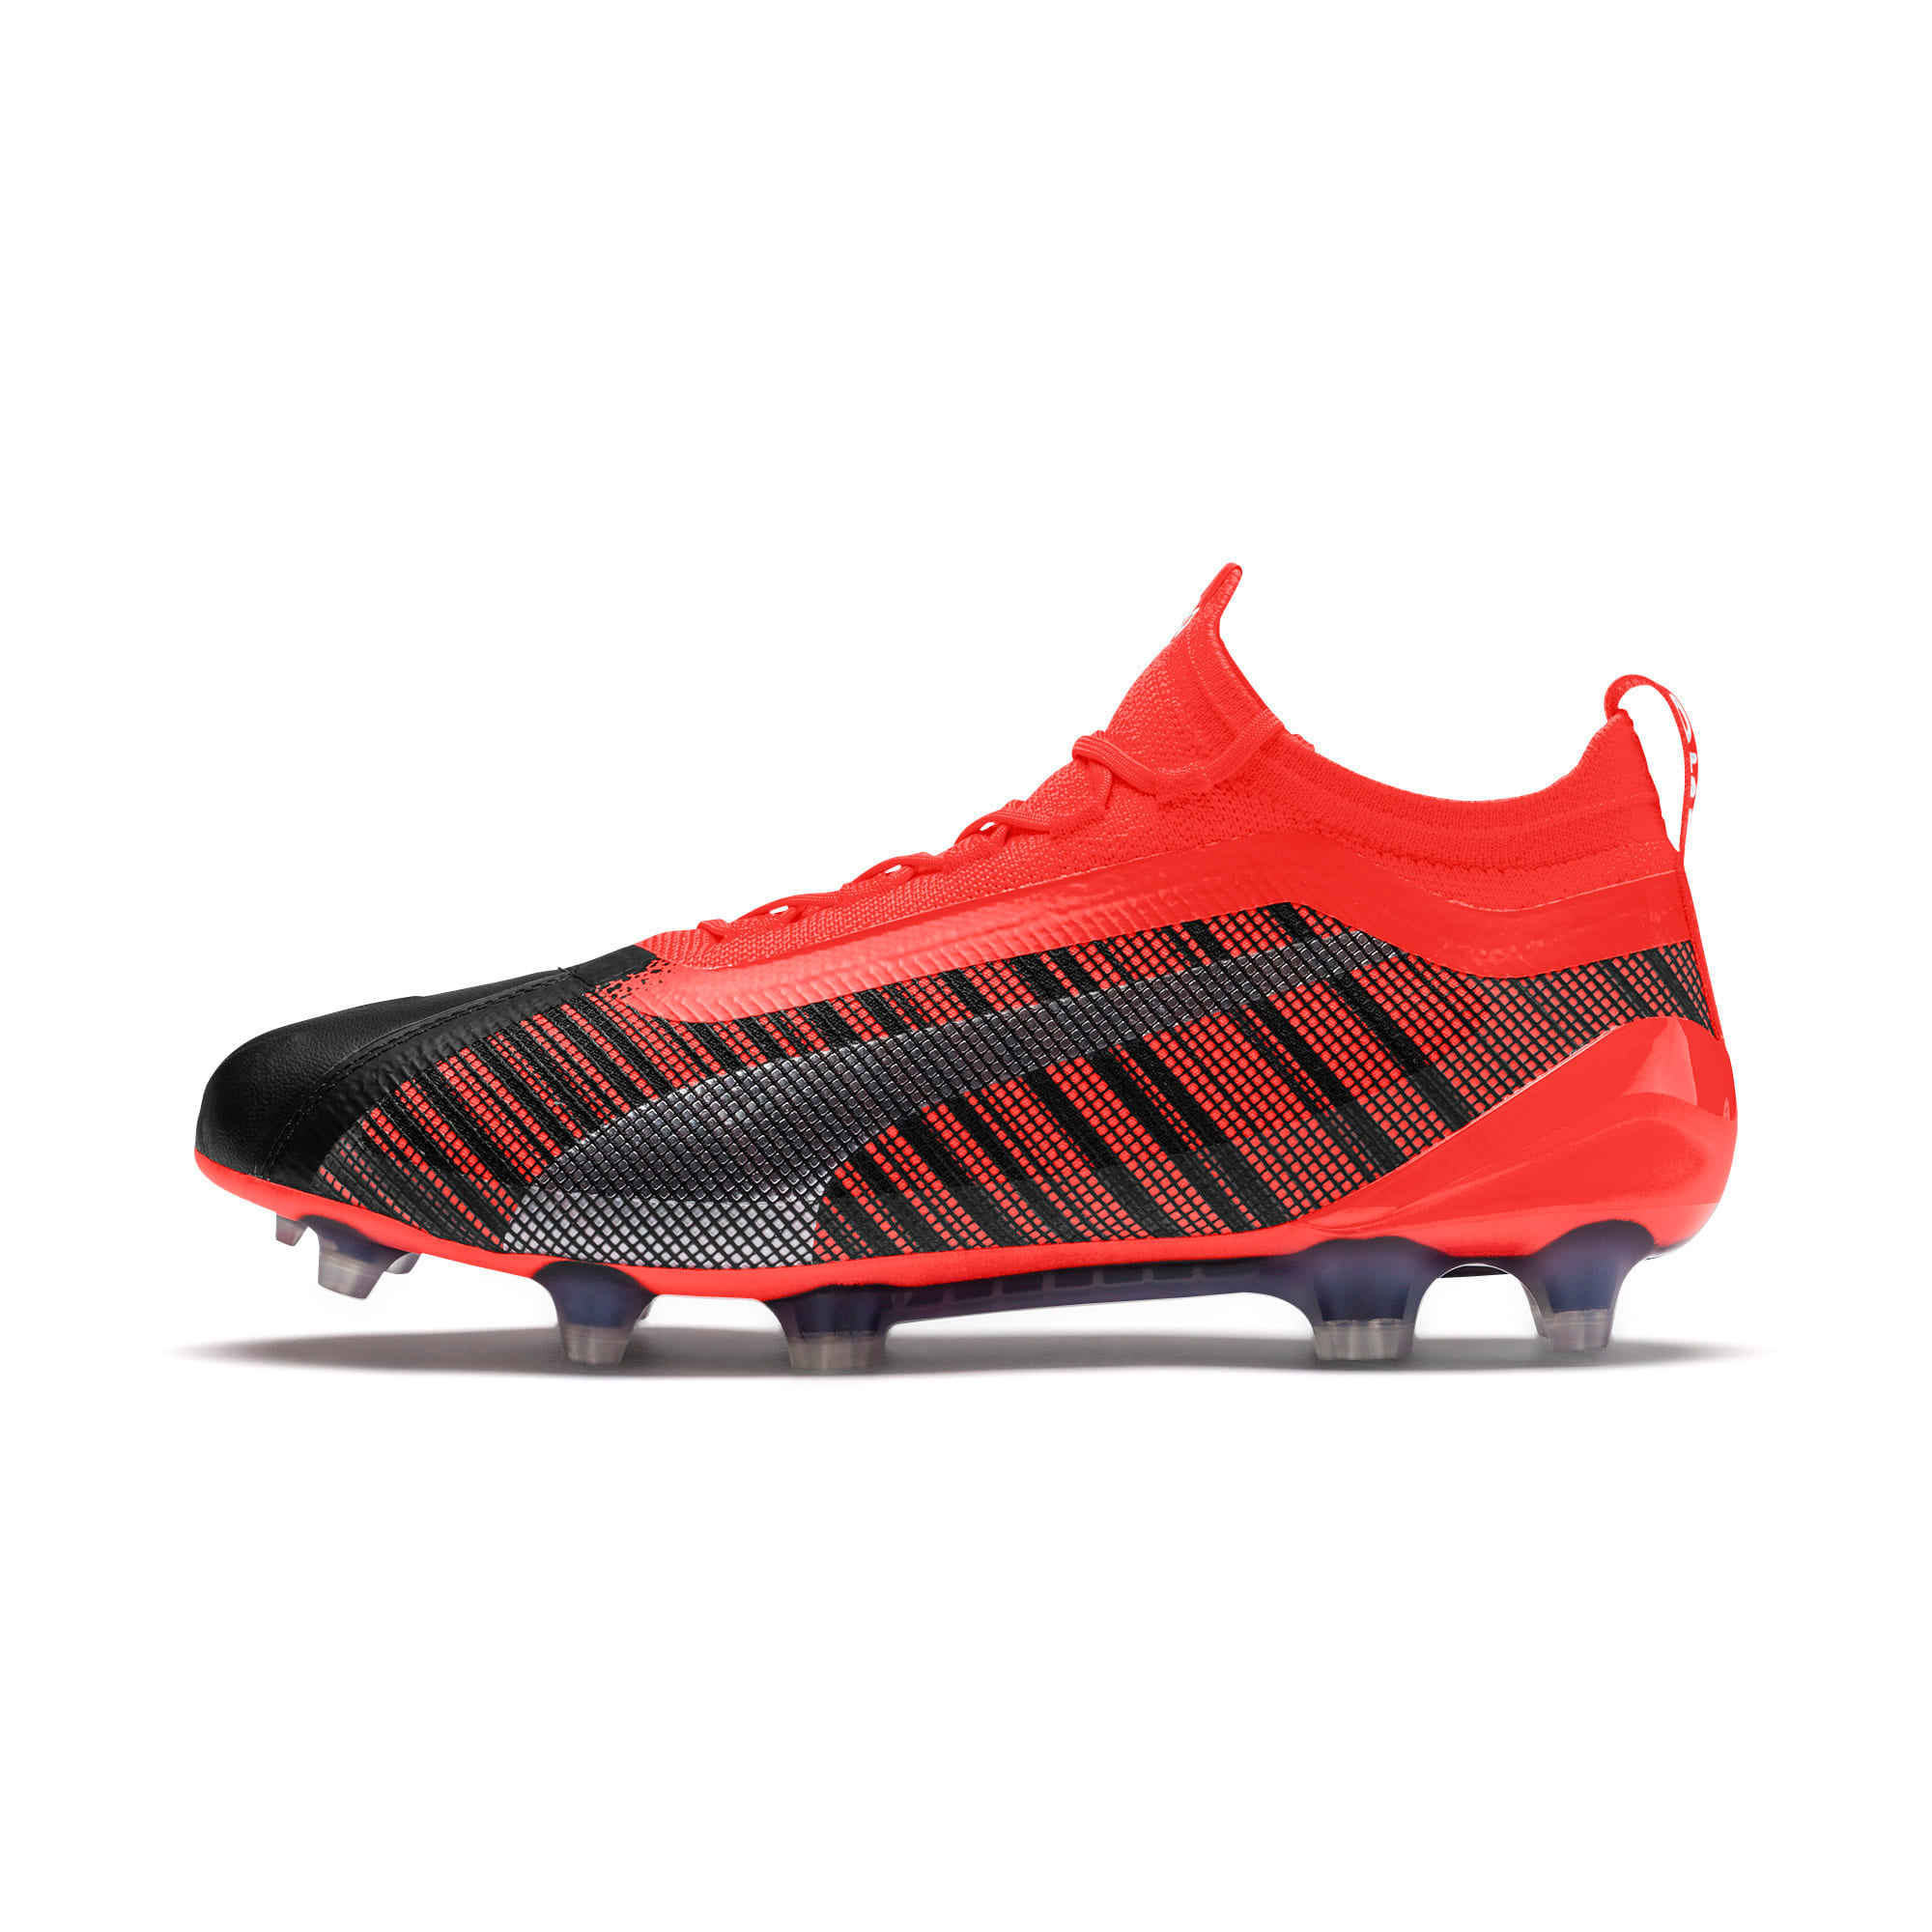 Thumbnail 1 of PUMA ONE 5.1 evoKNIT FG/AG Men's Football Boots, Black-Nrgy Red-Aged Silver, medium-IND